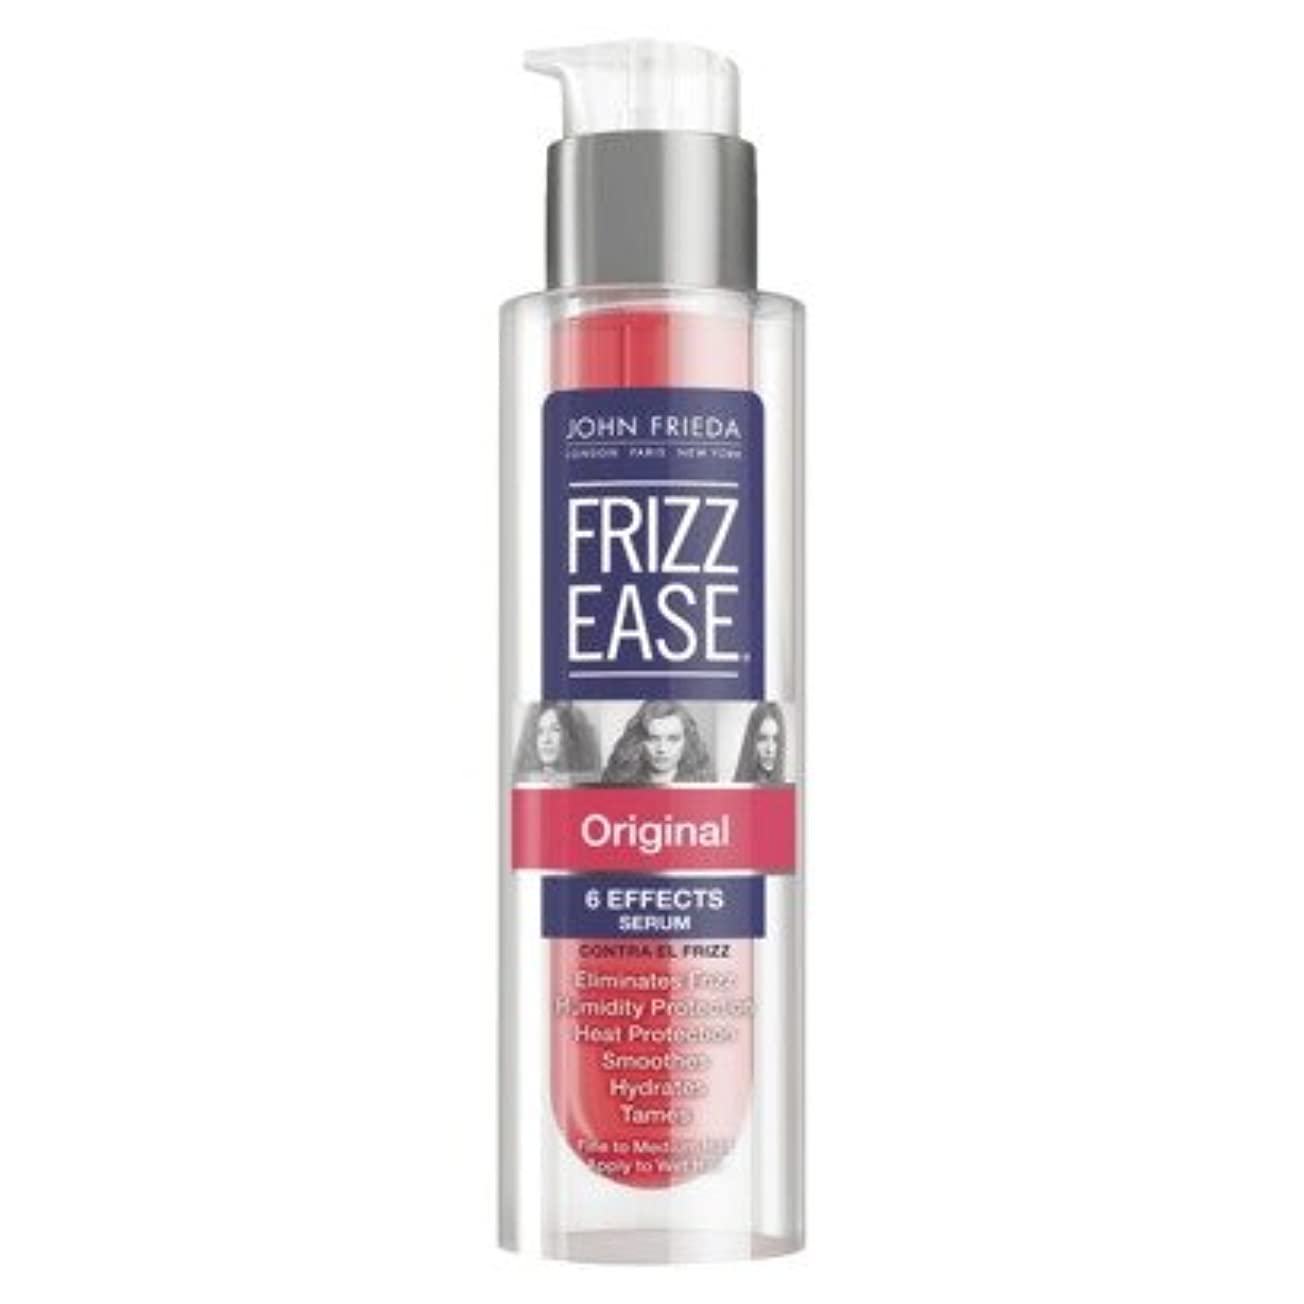 感覚テレビ着服John Frieda Frizz-Ease Hair Serum, Original Formula - 1.69 fl oz (49ml)